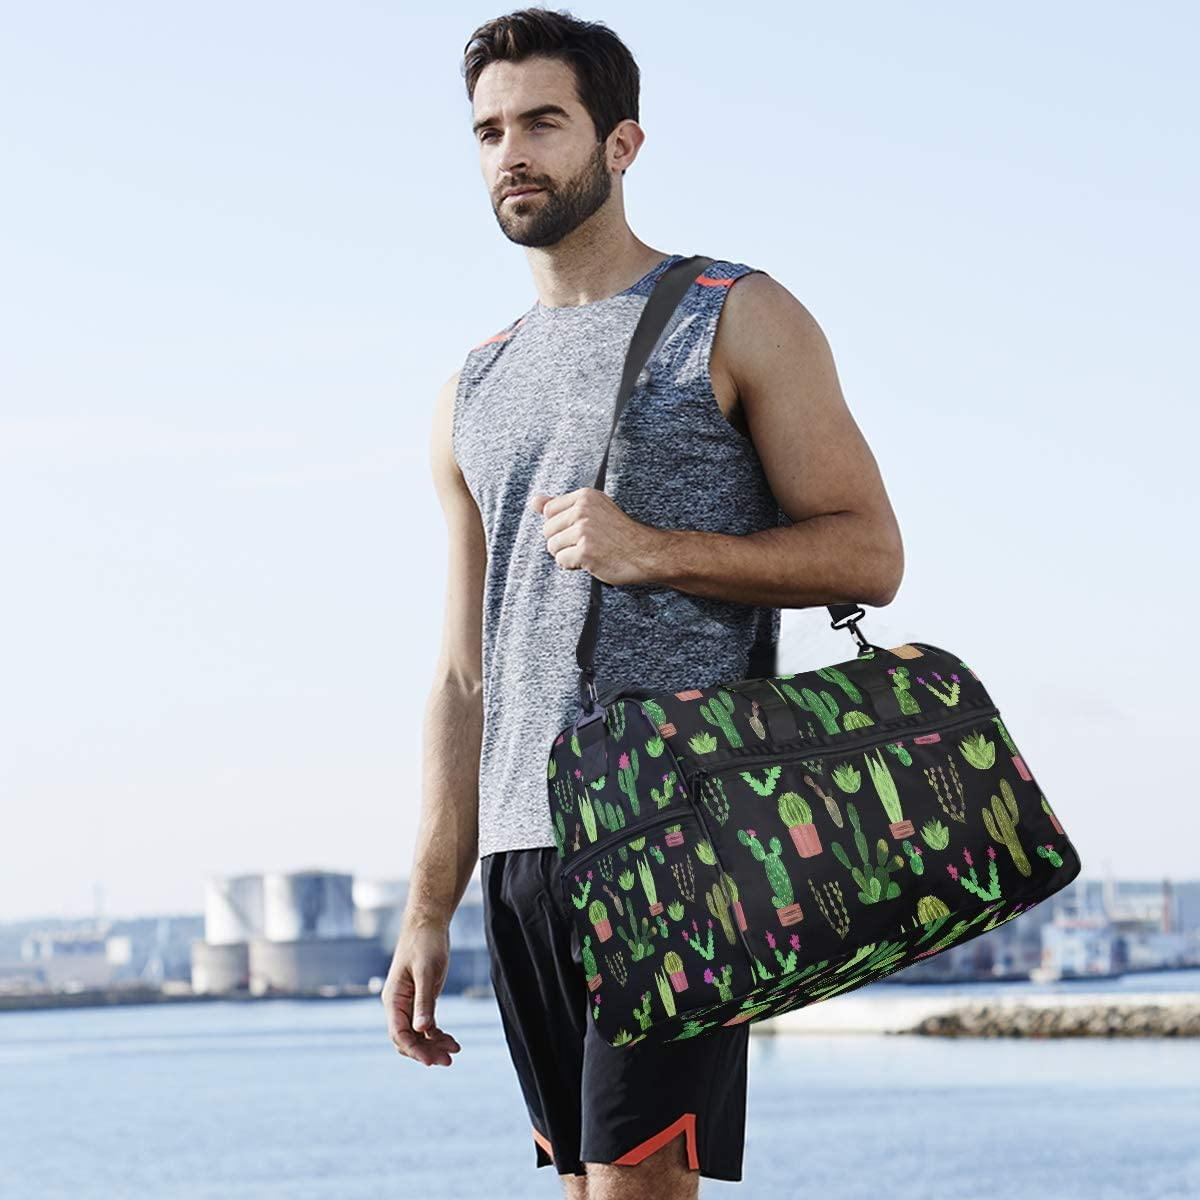 Cactus Travel Duffel Bag Luggage Sports Gym Bag With Shoes Compartment Large Capacity Lightweight Duffle Bag For Men Women